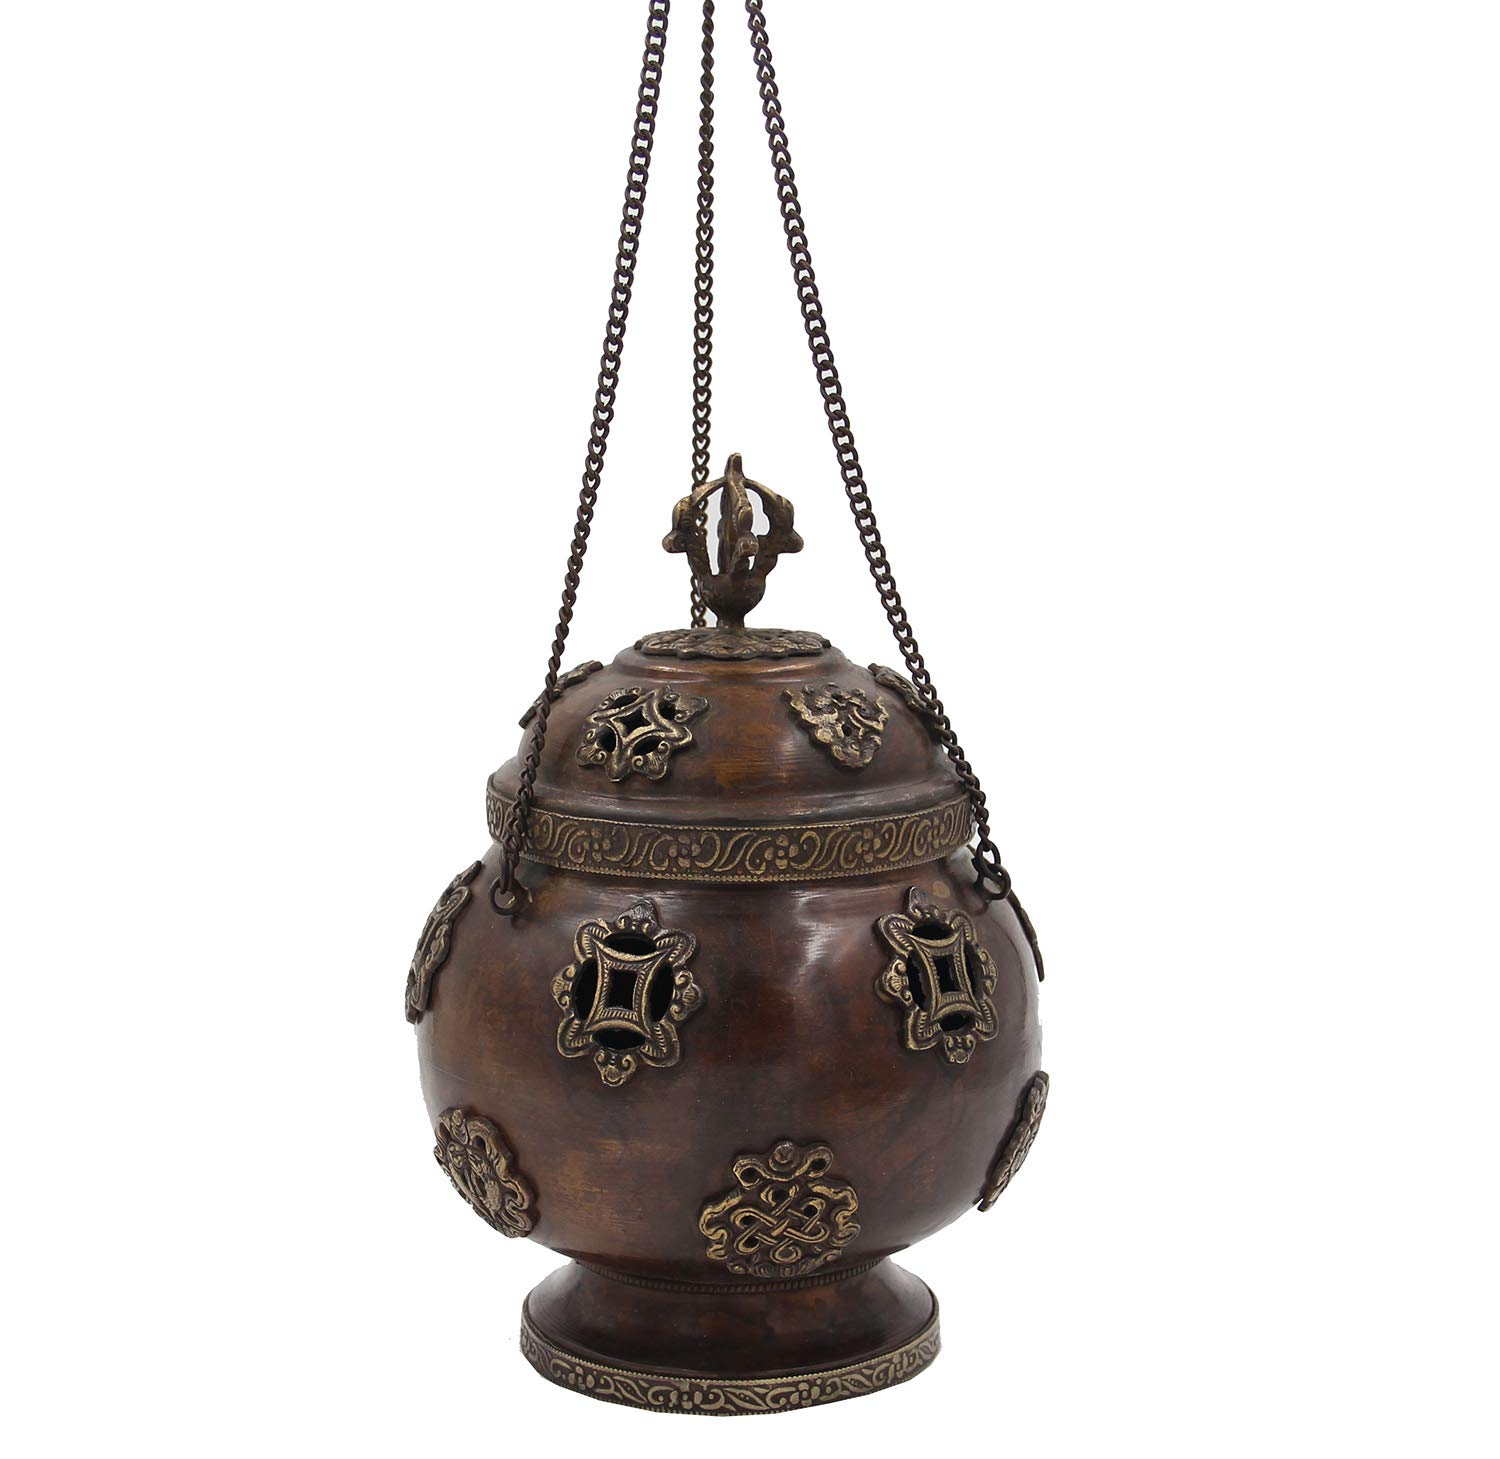 DharmaObjects Tibetan Traditional Hanging Incense Burner Copper (6 x 4.5 x 4.5 Inches, Hanging 8) by DharmaObjects (Image #3)